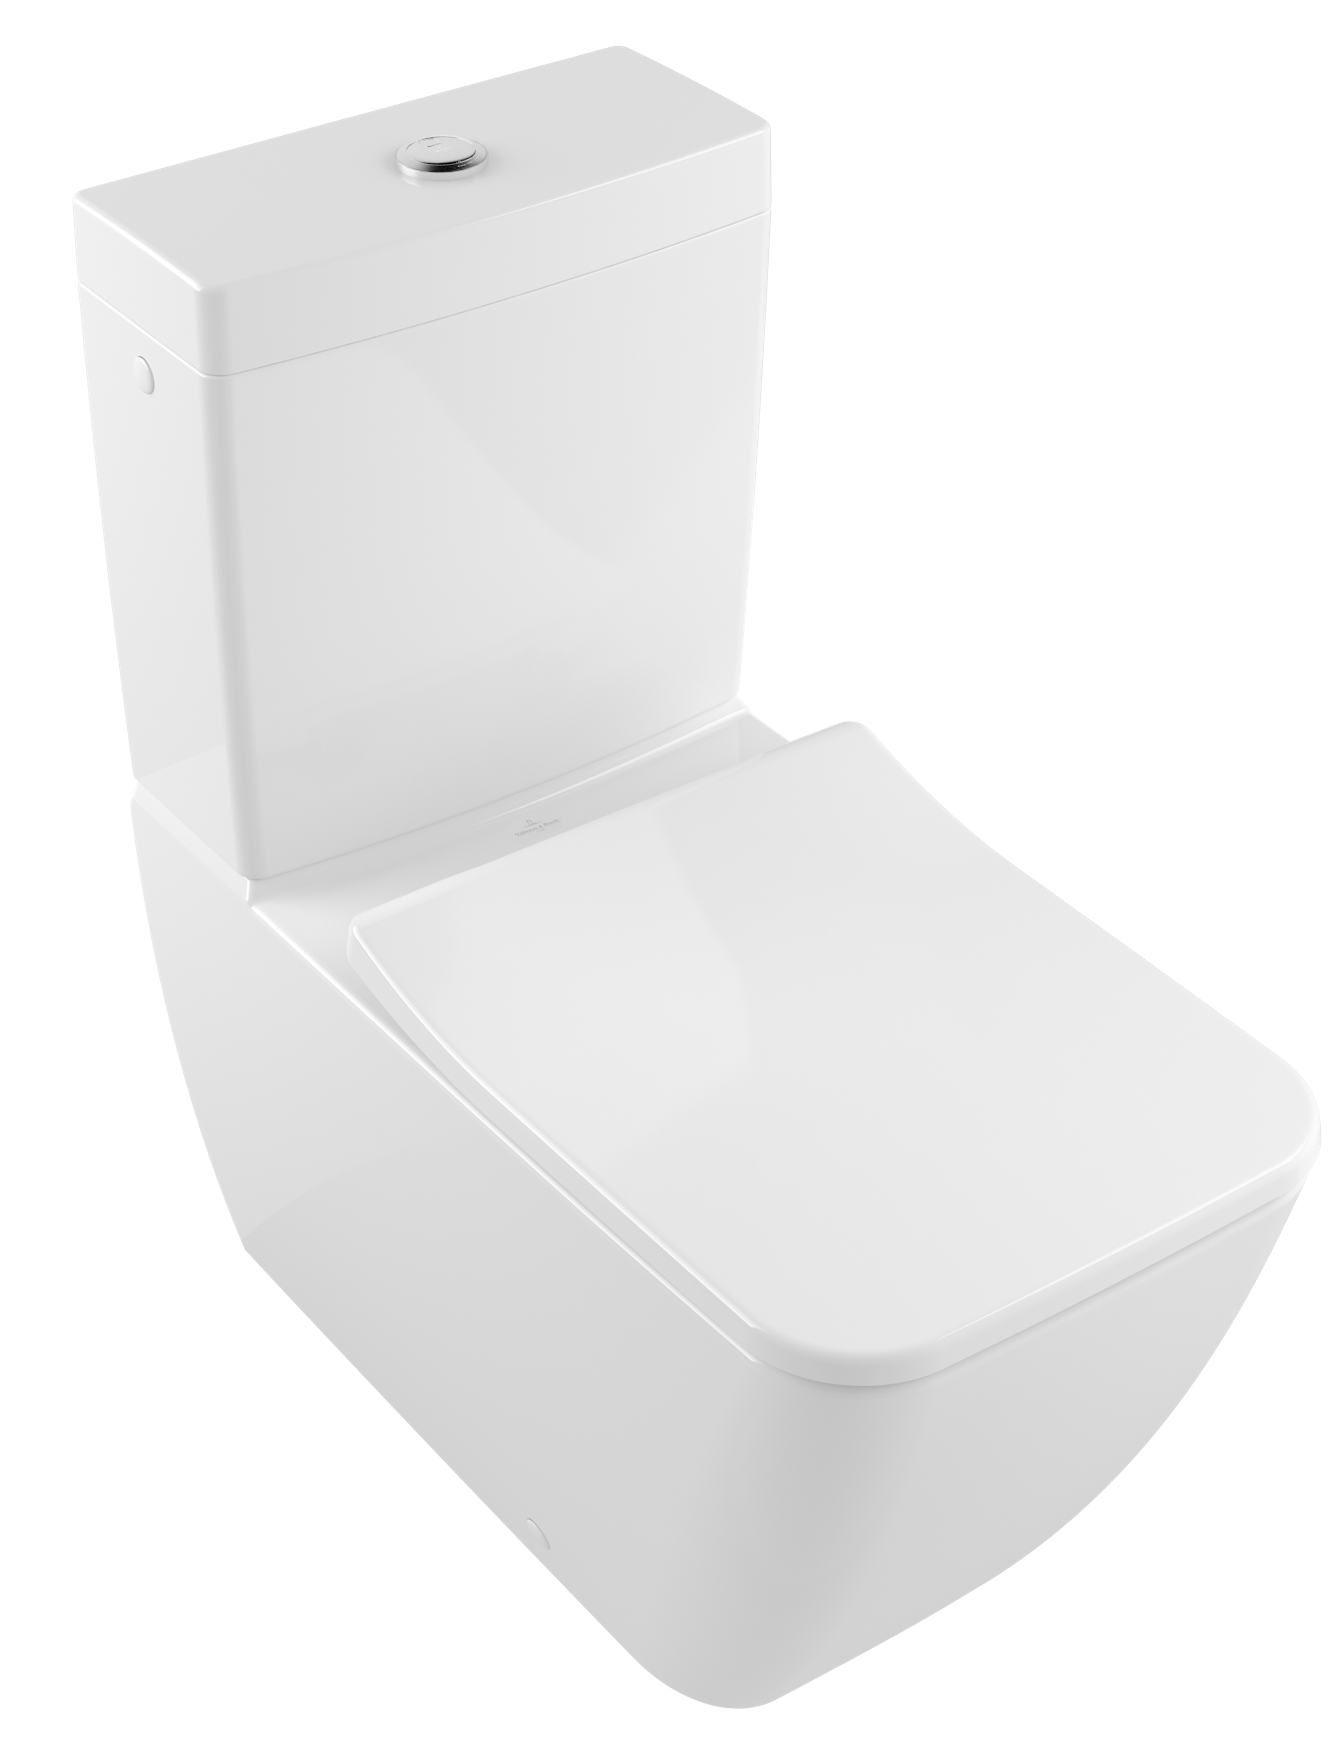 legato washdown wc for close coupled wc suite rimless angular 5634r0 villeroy boch. Black Bedroom Furniture Sets. Home Design Ideas